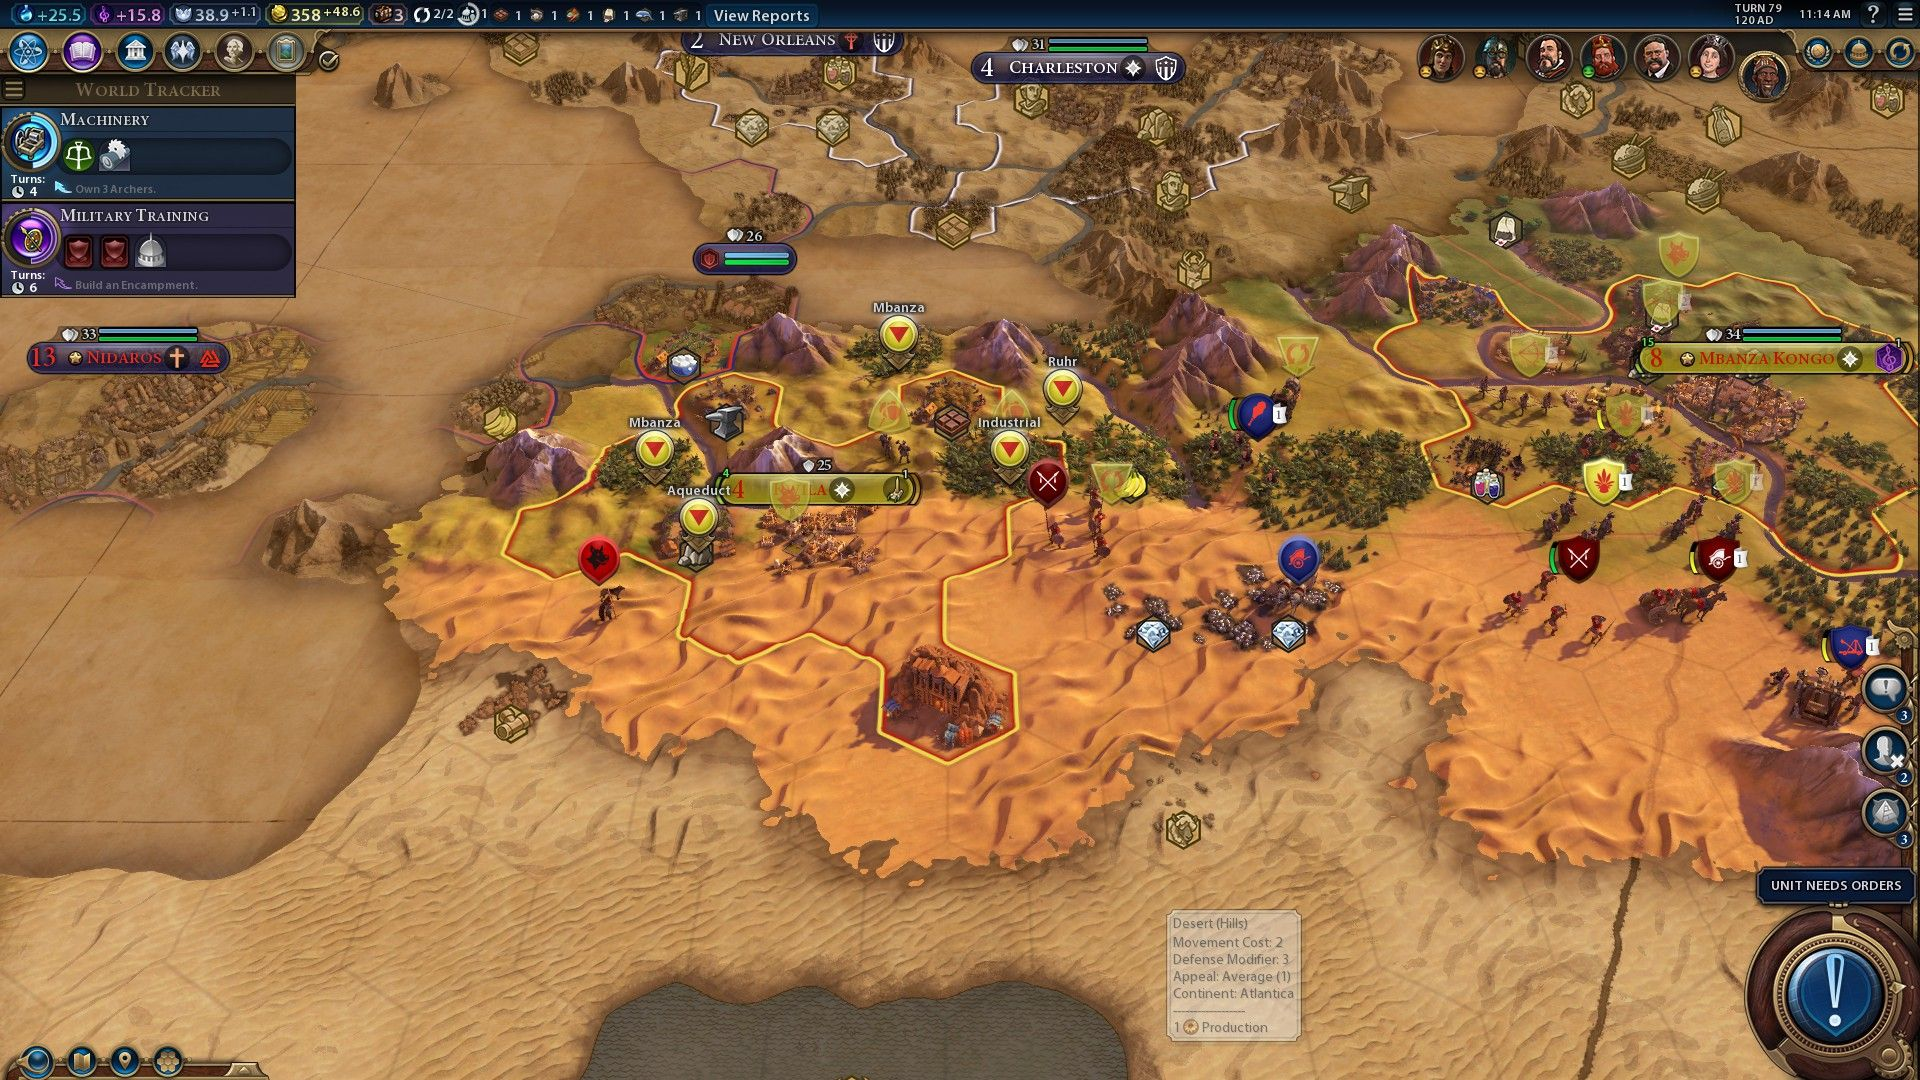 Petra porn in the making civilizationbeyondearth gaming petra porn in the making civilizationbeyondearth gaming civilization games world gumiabroncs Images